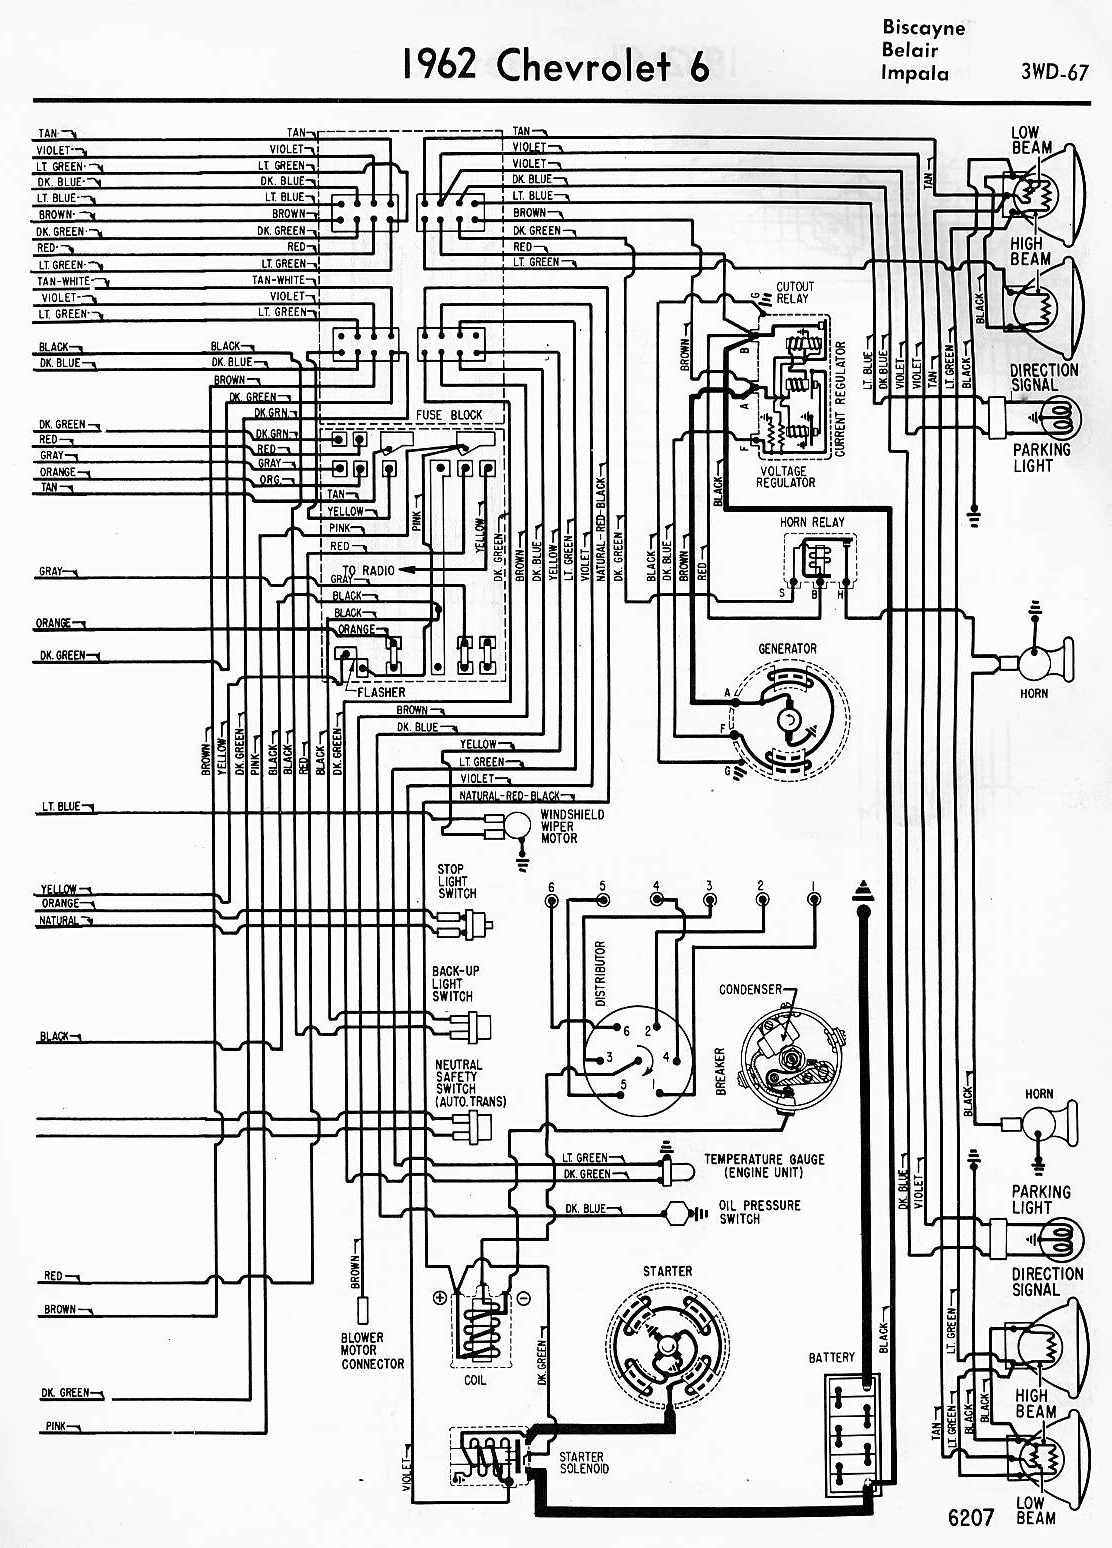 Wiring Diagram For 1970 Chevy Impala | Wiring Diagram on 1970 impala suspension diagram, 1970 impala fuel gauge, 1967 impala wiper motor diagram, 1970 impala engine, 1970 impala frame, 1970 mustang fuse box diagram, 1970 impala exhaust diagram, 1970 impala wiper motor, 1970 chevelle fuse block diagram, 1970 impala brochure, 1970 impala tachometer, 1970 chevelle heating diagram,